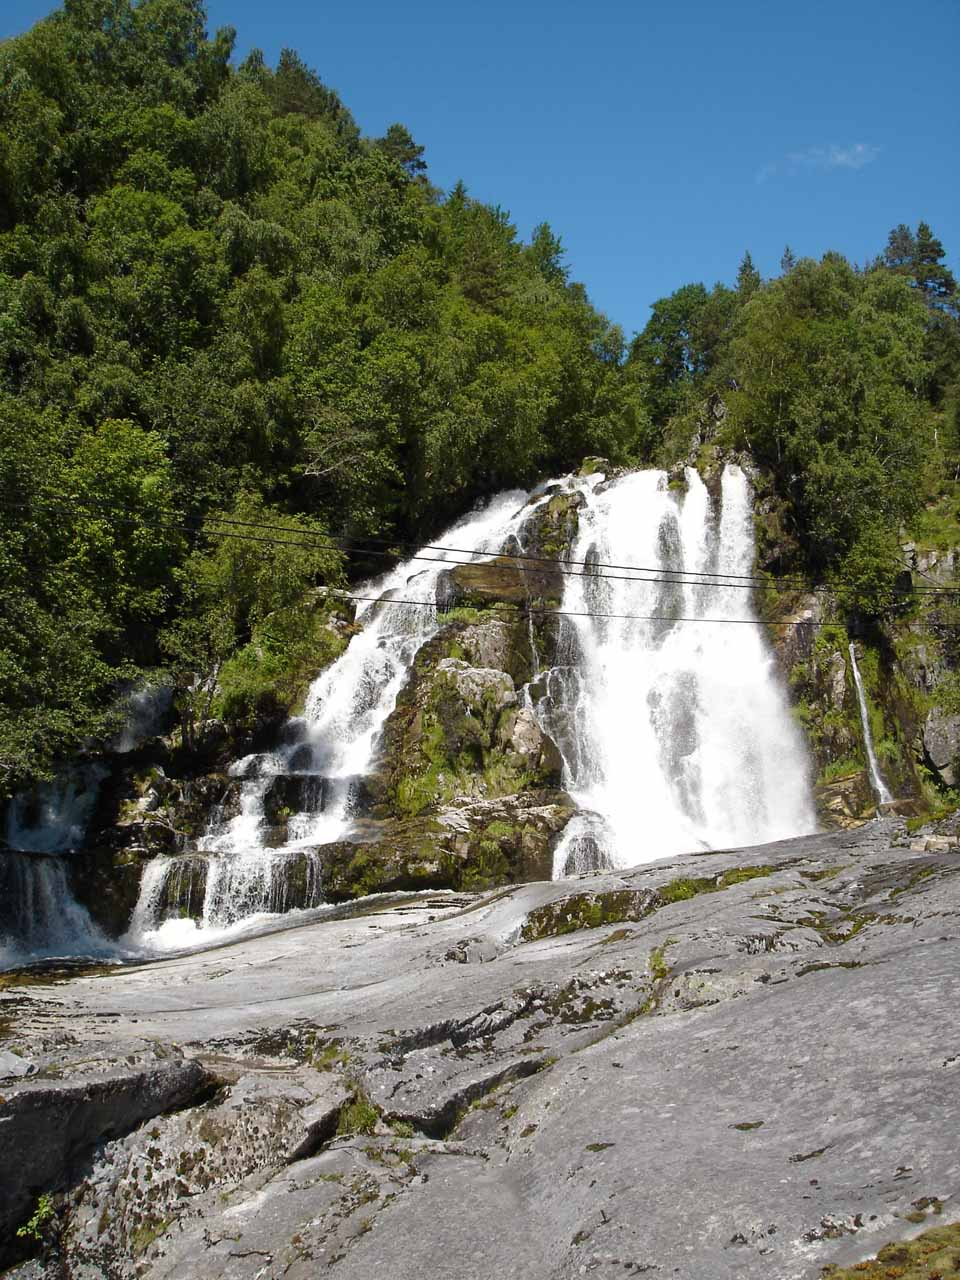 About 7km south of Sogndalsfjøra, we spotted this roadside waterfall though we didn't know its name (possibly near Fardal?)